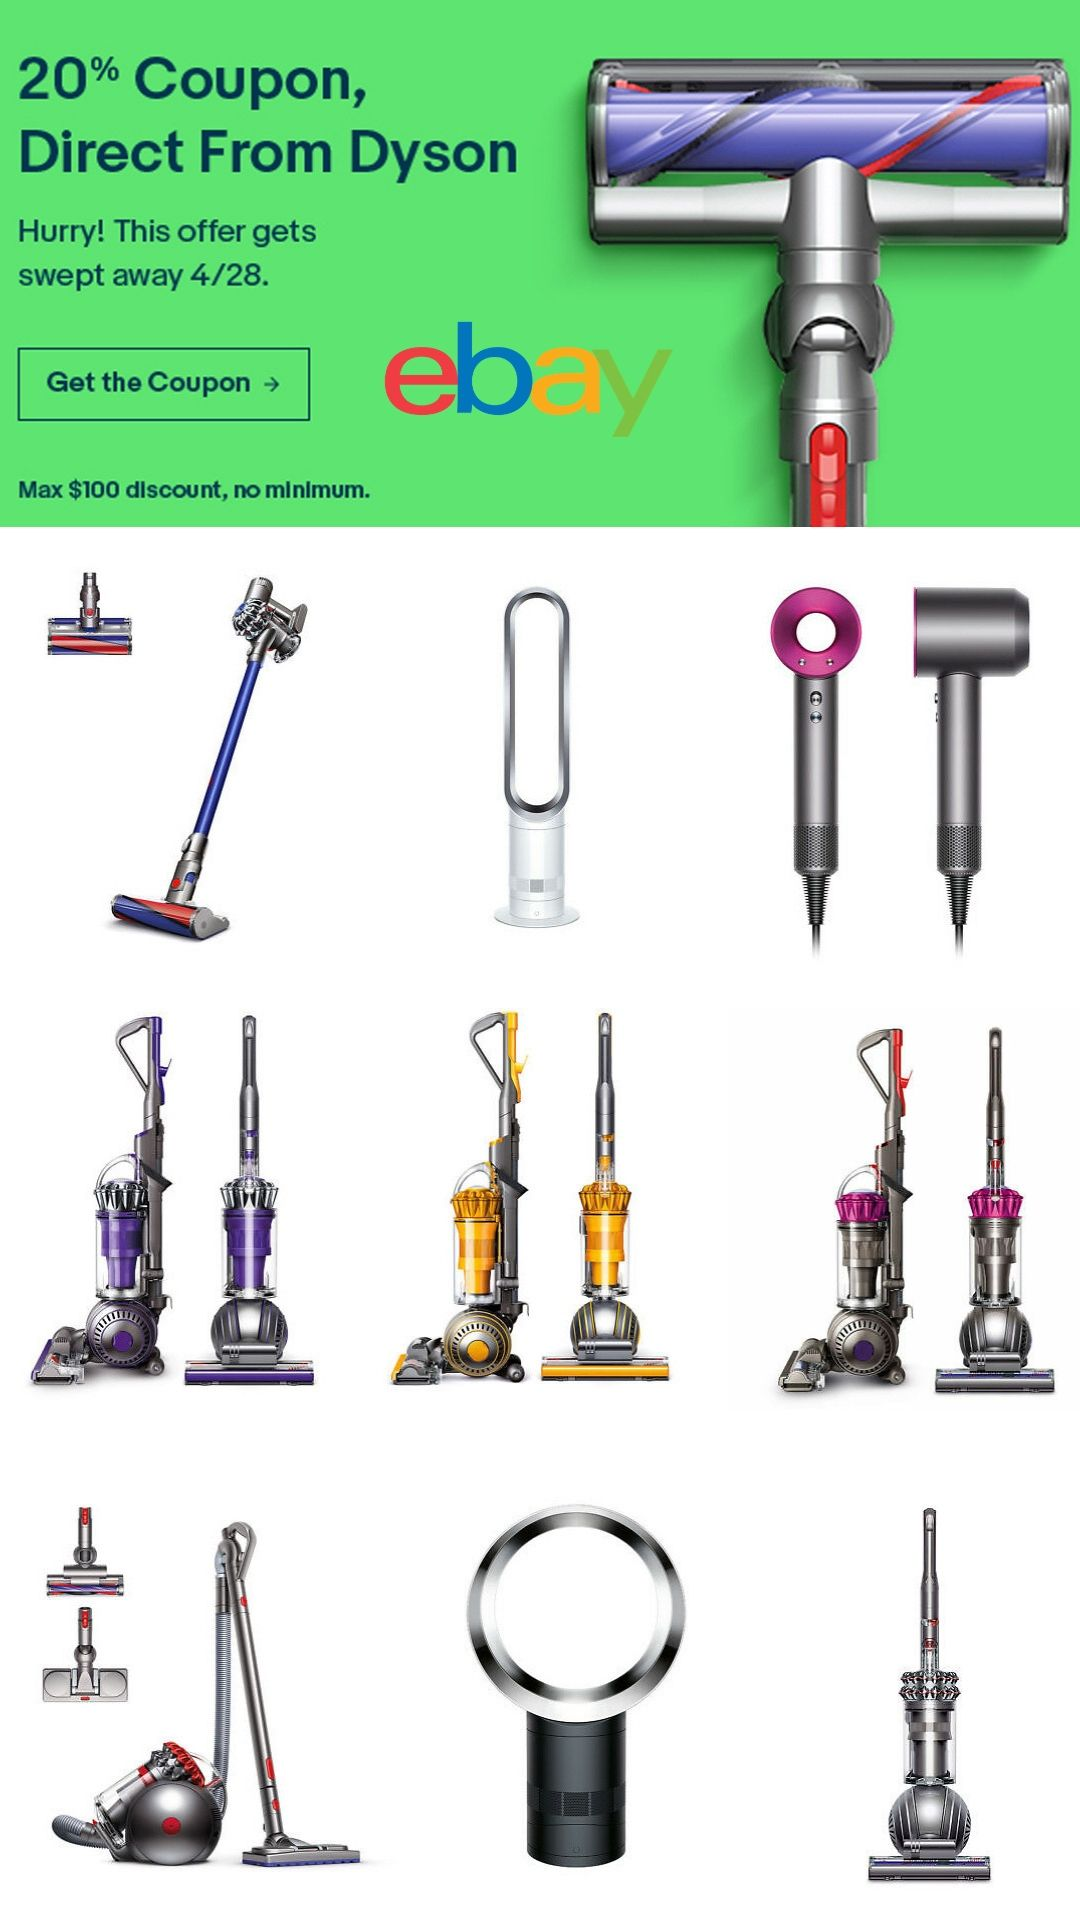 20 Coupon Direct From Dyson Code Jump2dyson Now Thru 4 28 19 Best Appliances Dyson Heater Fan